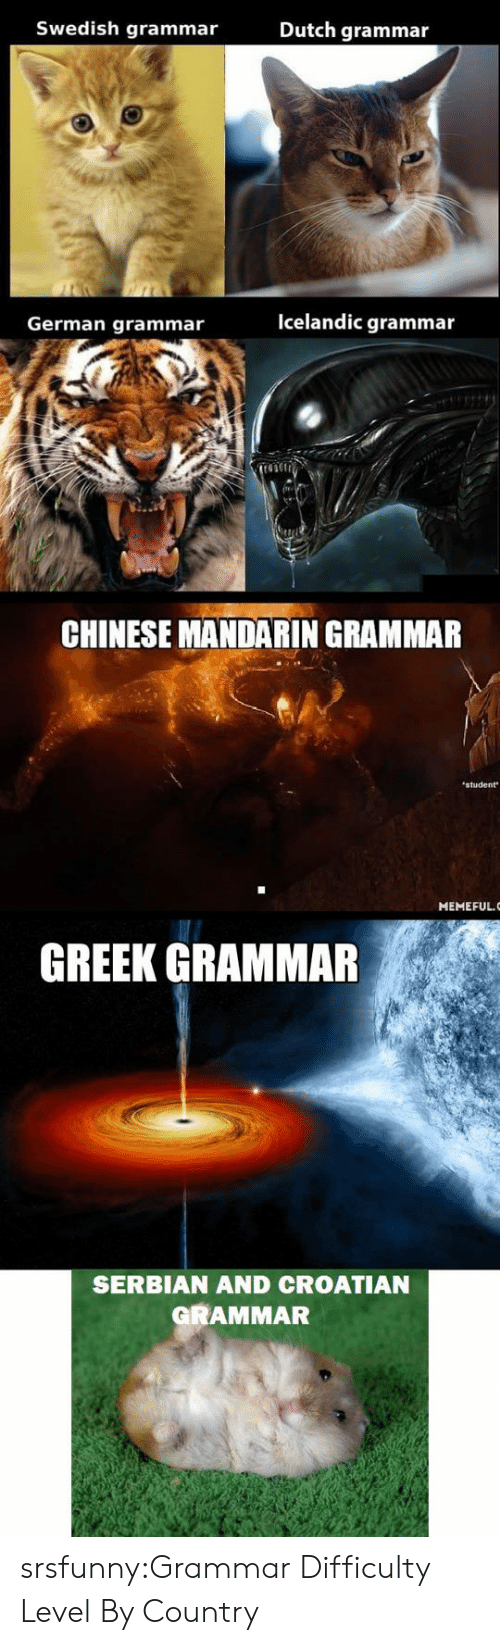 mandarin: Swedish grammar  Dutch grammar  German grammar  Icelandic grammar  CHINESE MANDARIN GRAMMAR  student  MEMEFUL.  GREEK GRAMMAR  SERBIAN AND CROATIAN  GRAMMAR srsfunny:Grammar Difficulty Level By Country